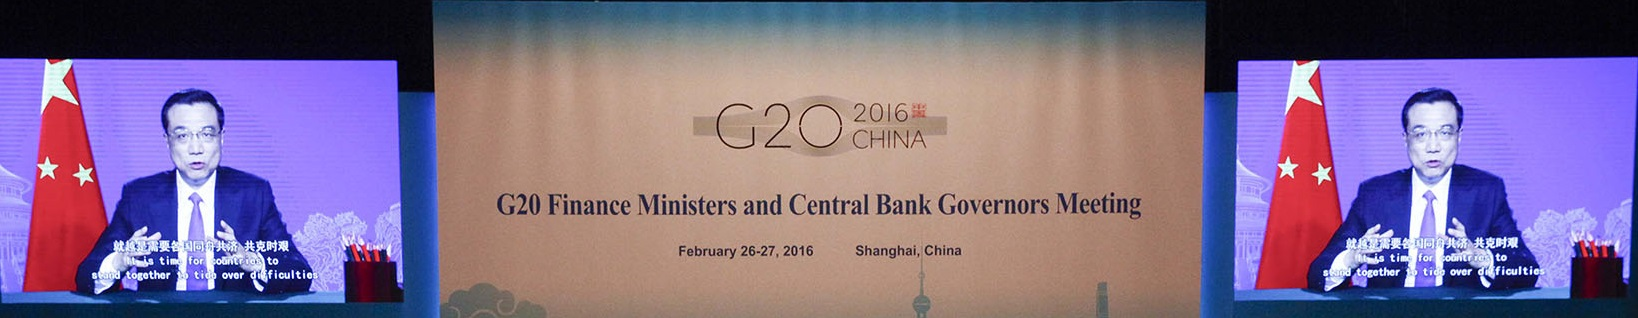 [Divider] [Carmignac Note] G20 Finance Ministers